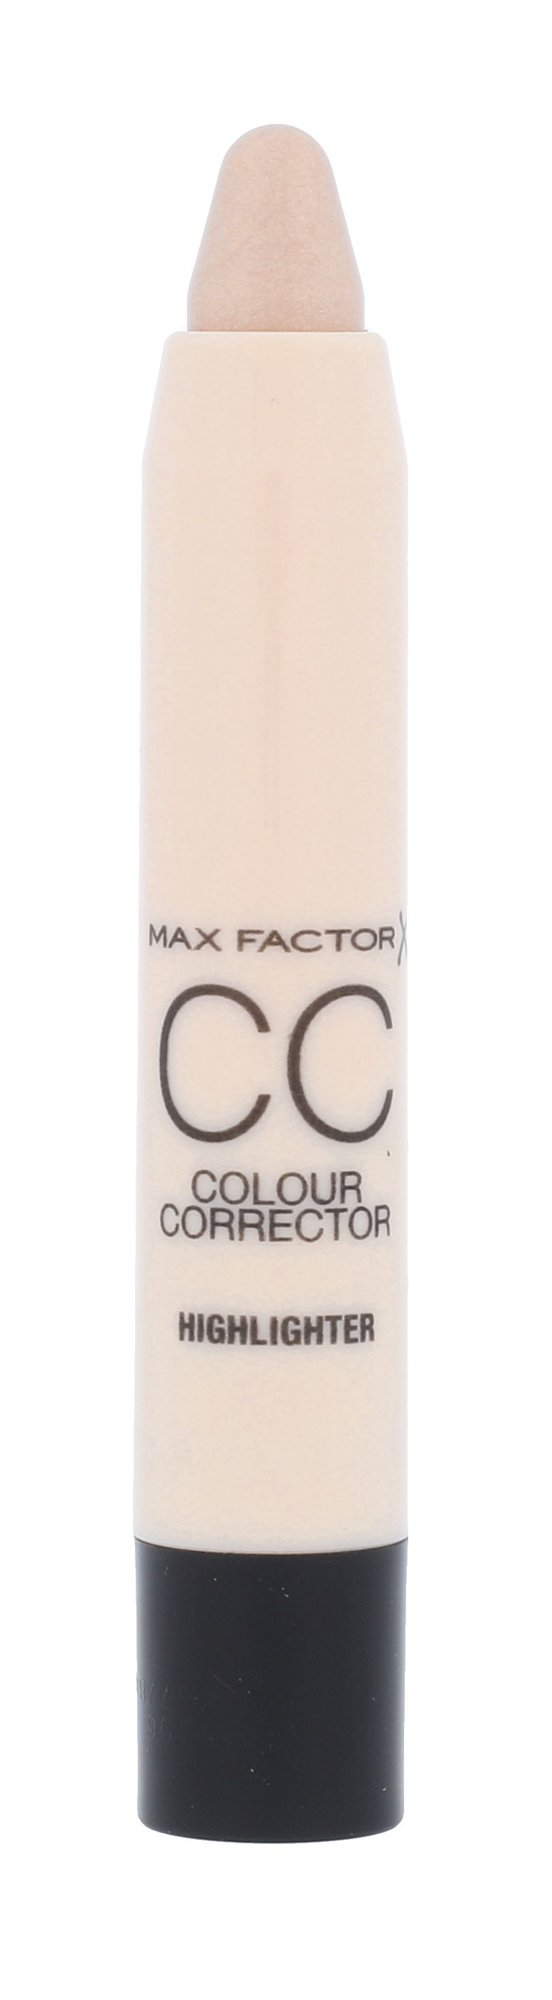 Max Factor CC Colour Corrector Cosmetic 3,3ml Highlighter